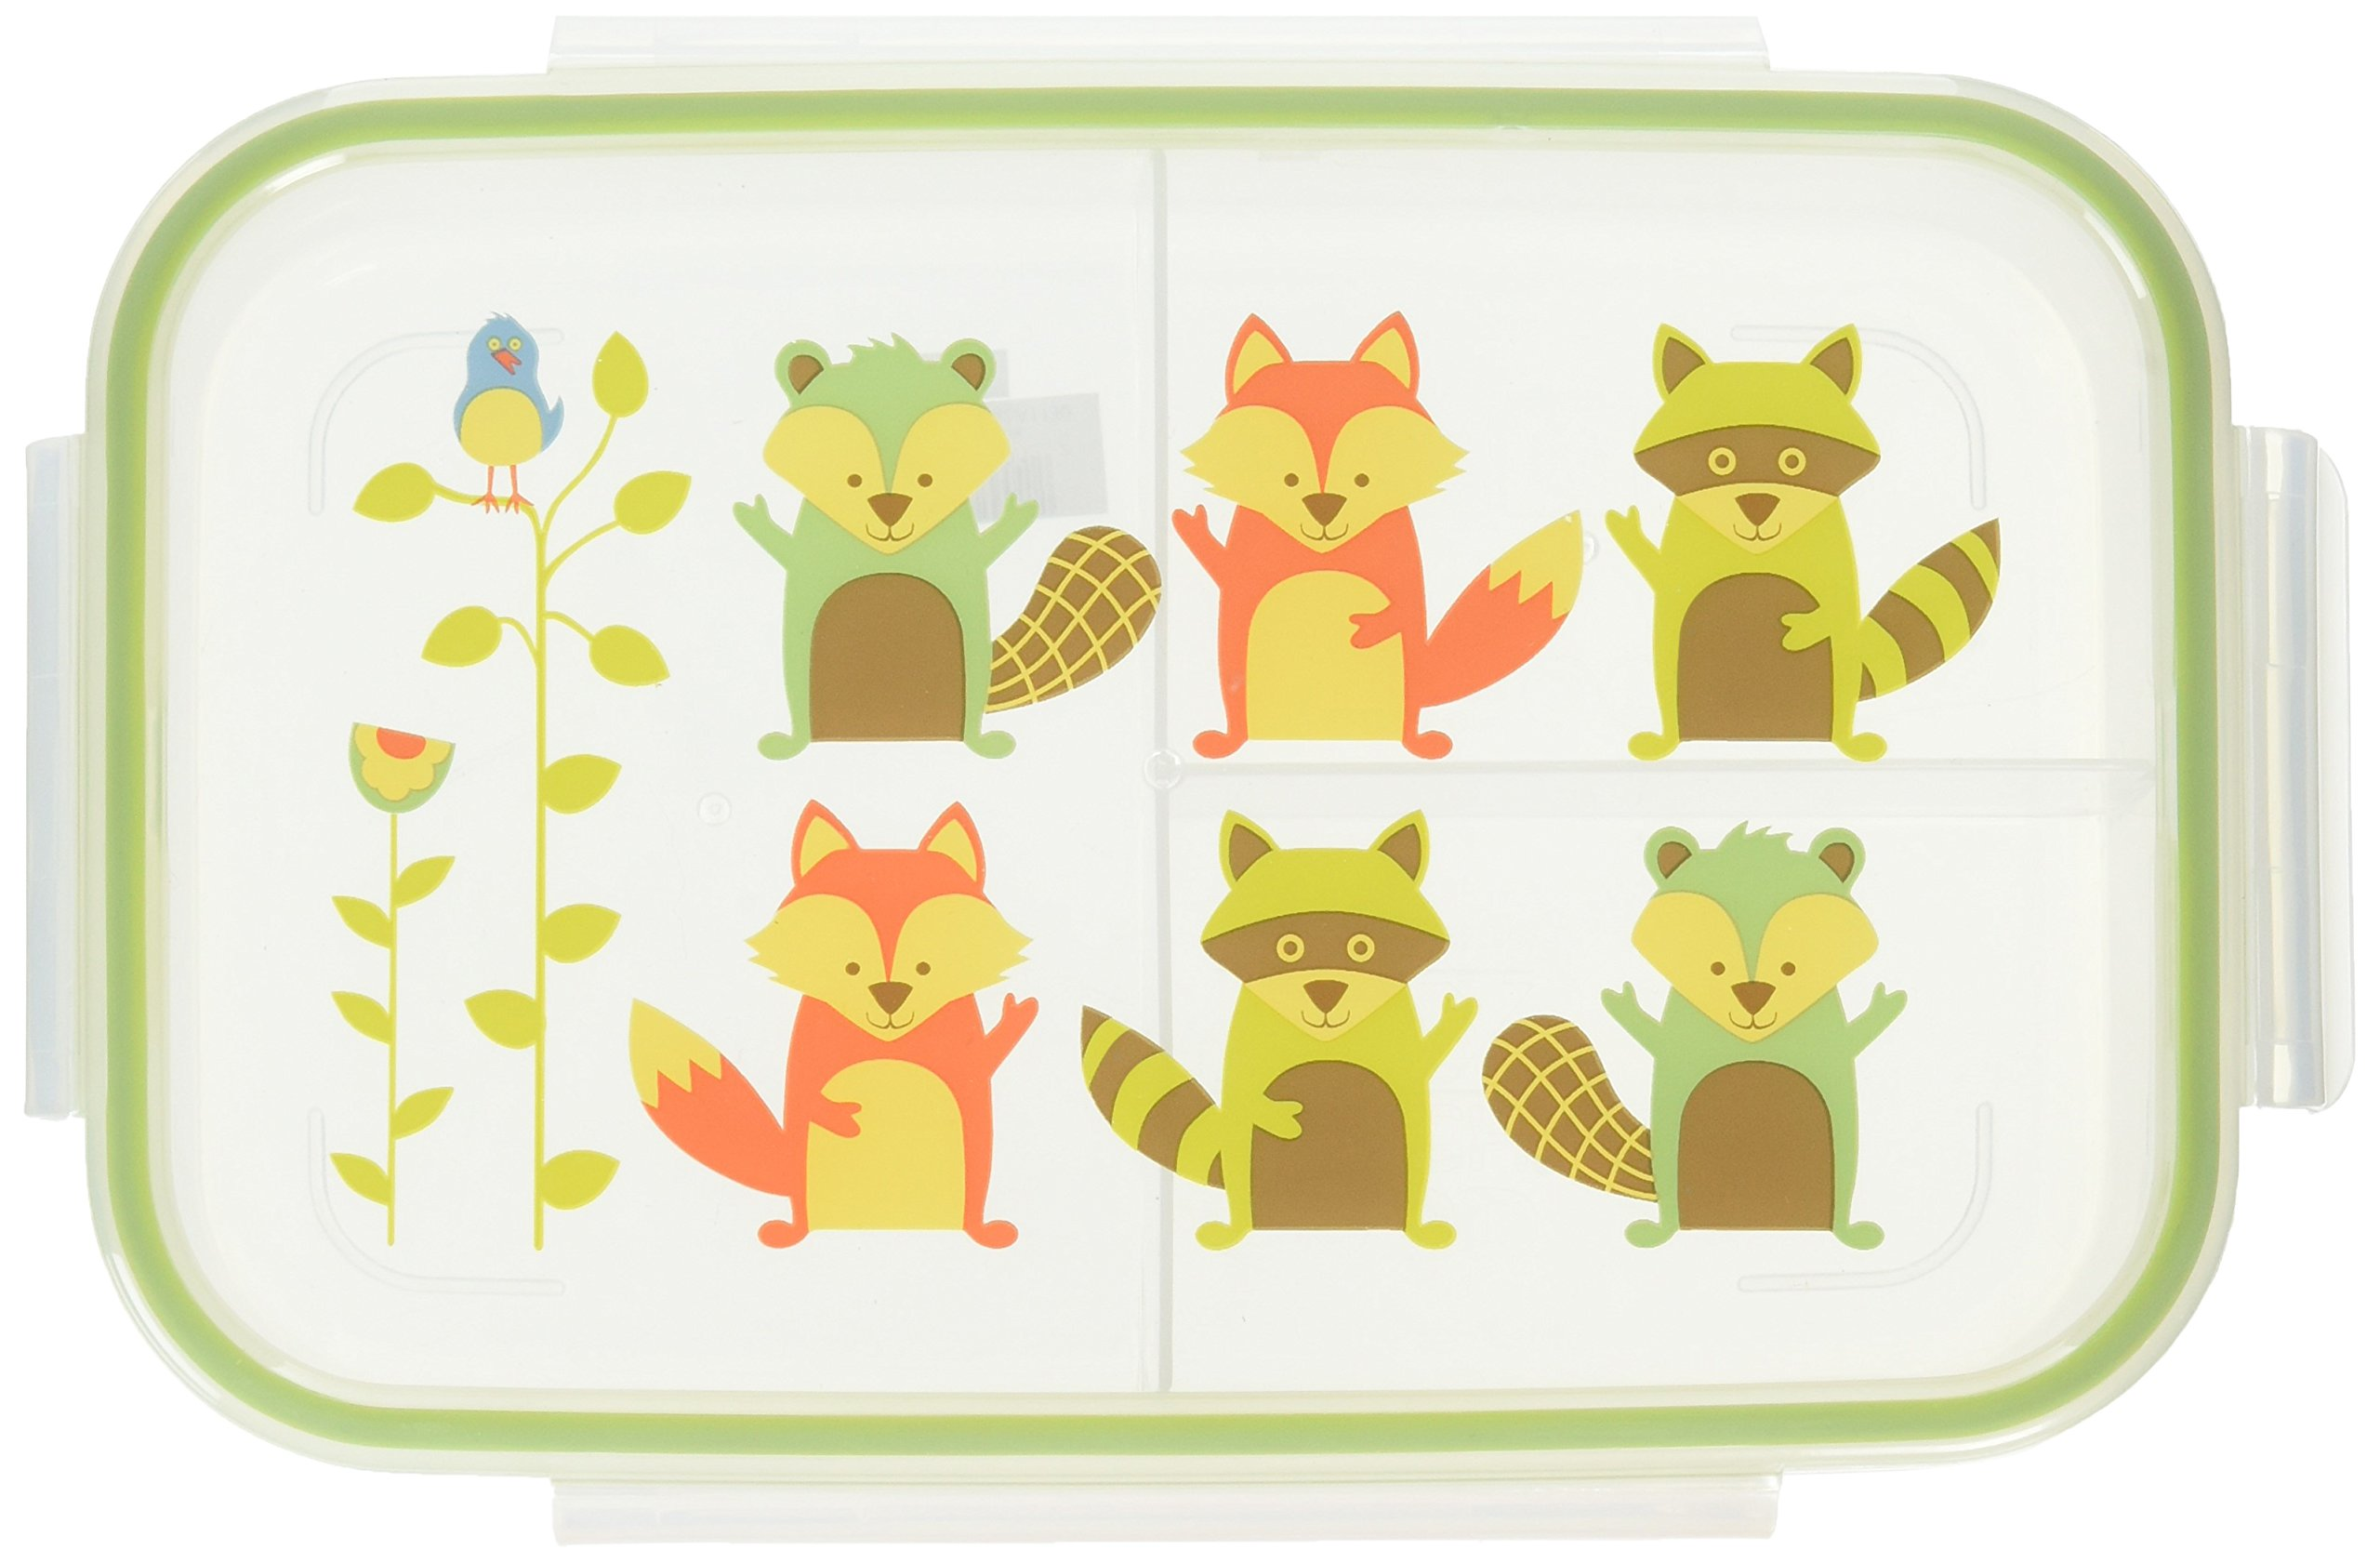 SUGAR BOOGER Good lunch bento box WHAT DID THE FOX EAT